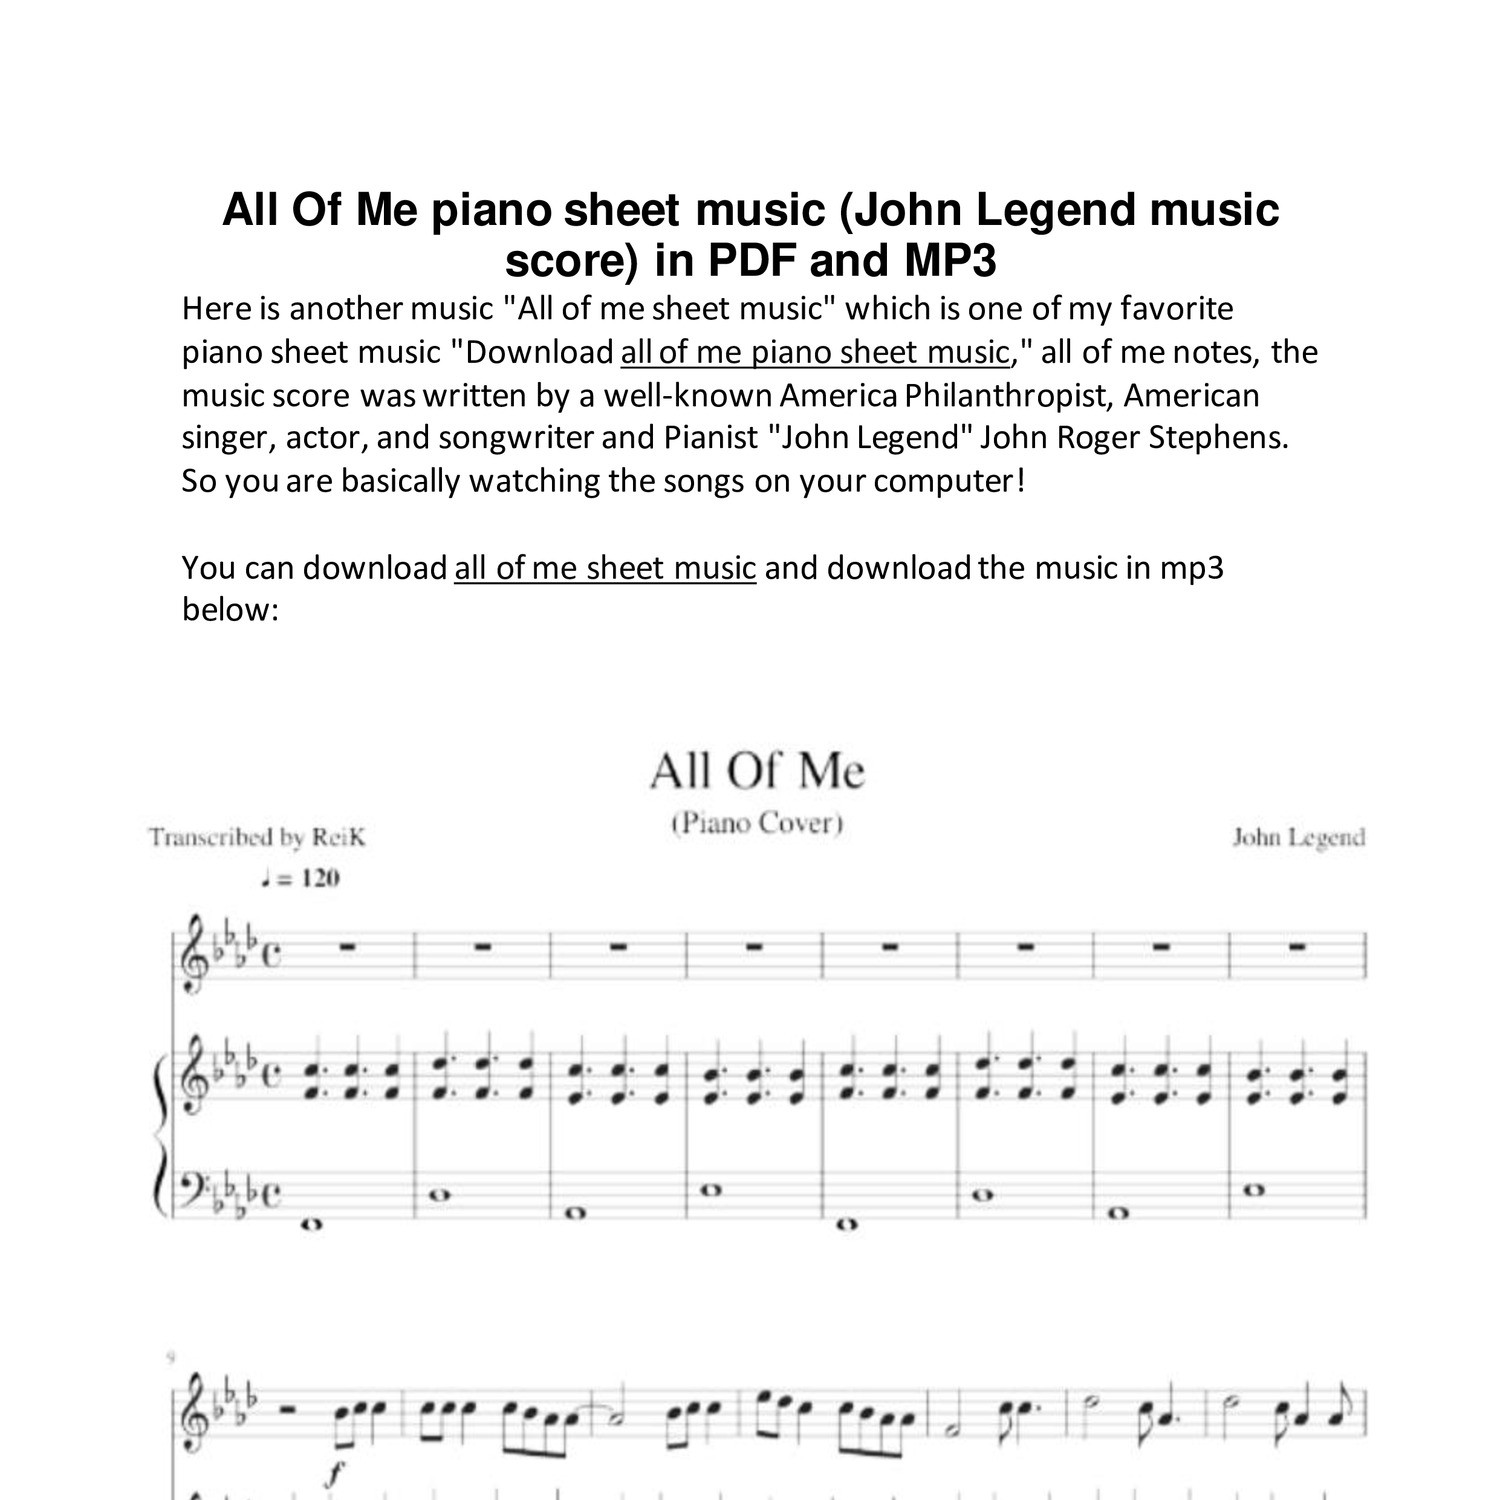 All Of Me Piano Sheet Music John Legend Music Score In Pdf And Mp3 Docx Docdroid